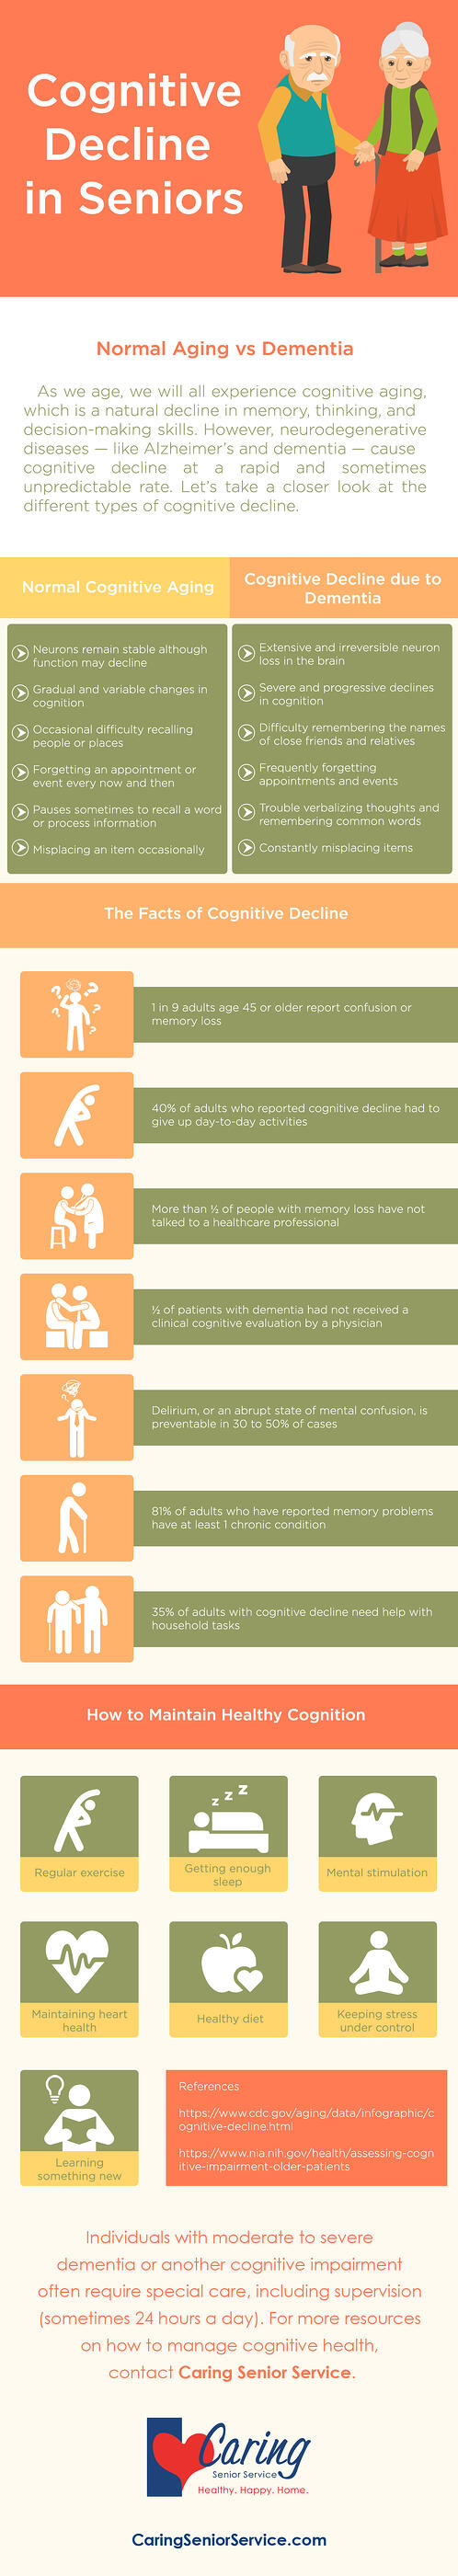 Cognitive Decline in Seniors Infographic-Branded